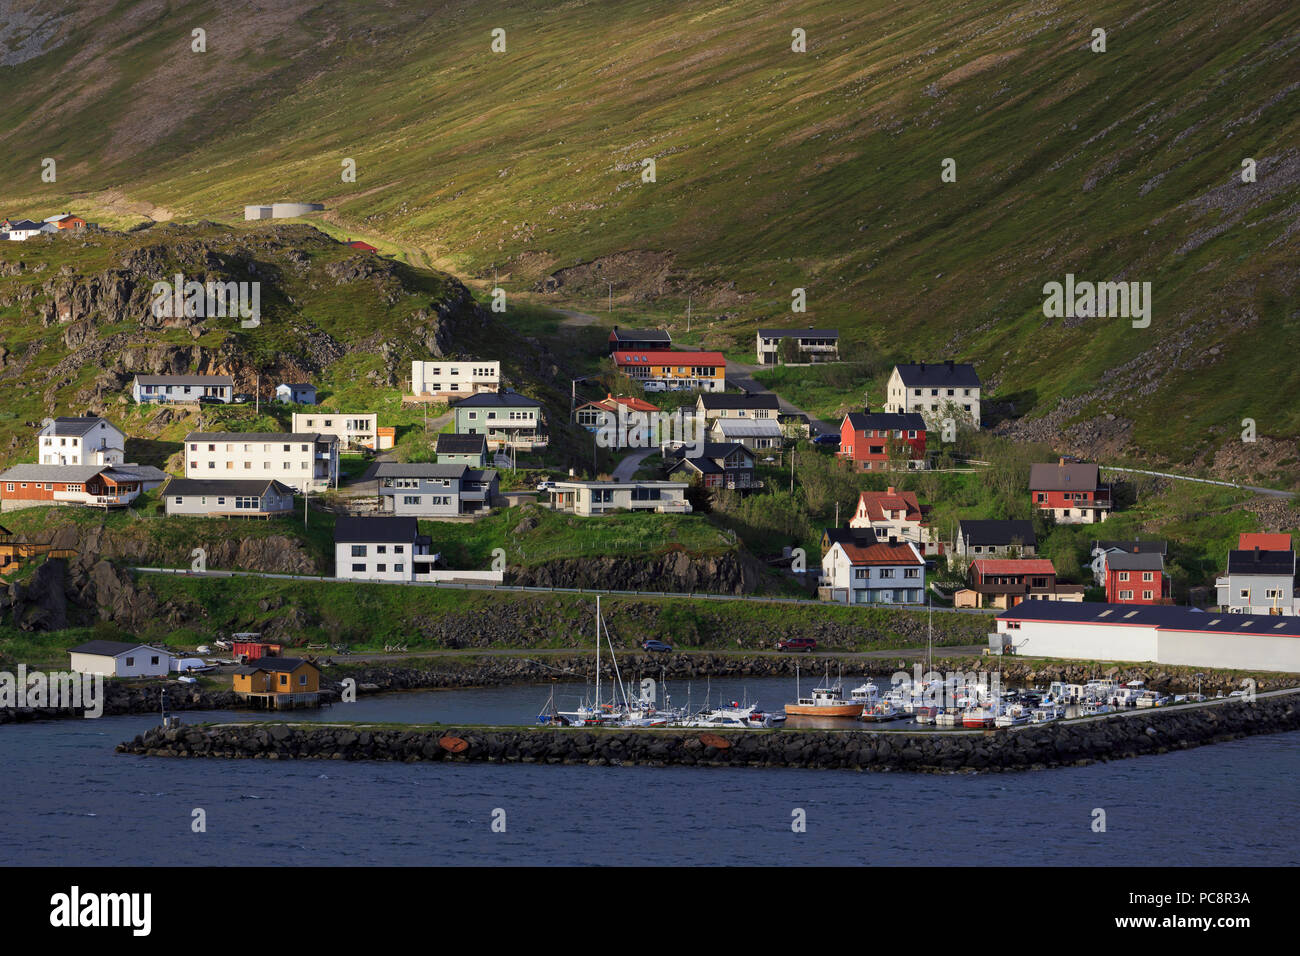 Honningsvag Town,Mageroya Island, Finnmark County, Norway - Stock Image